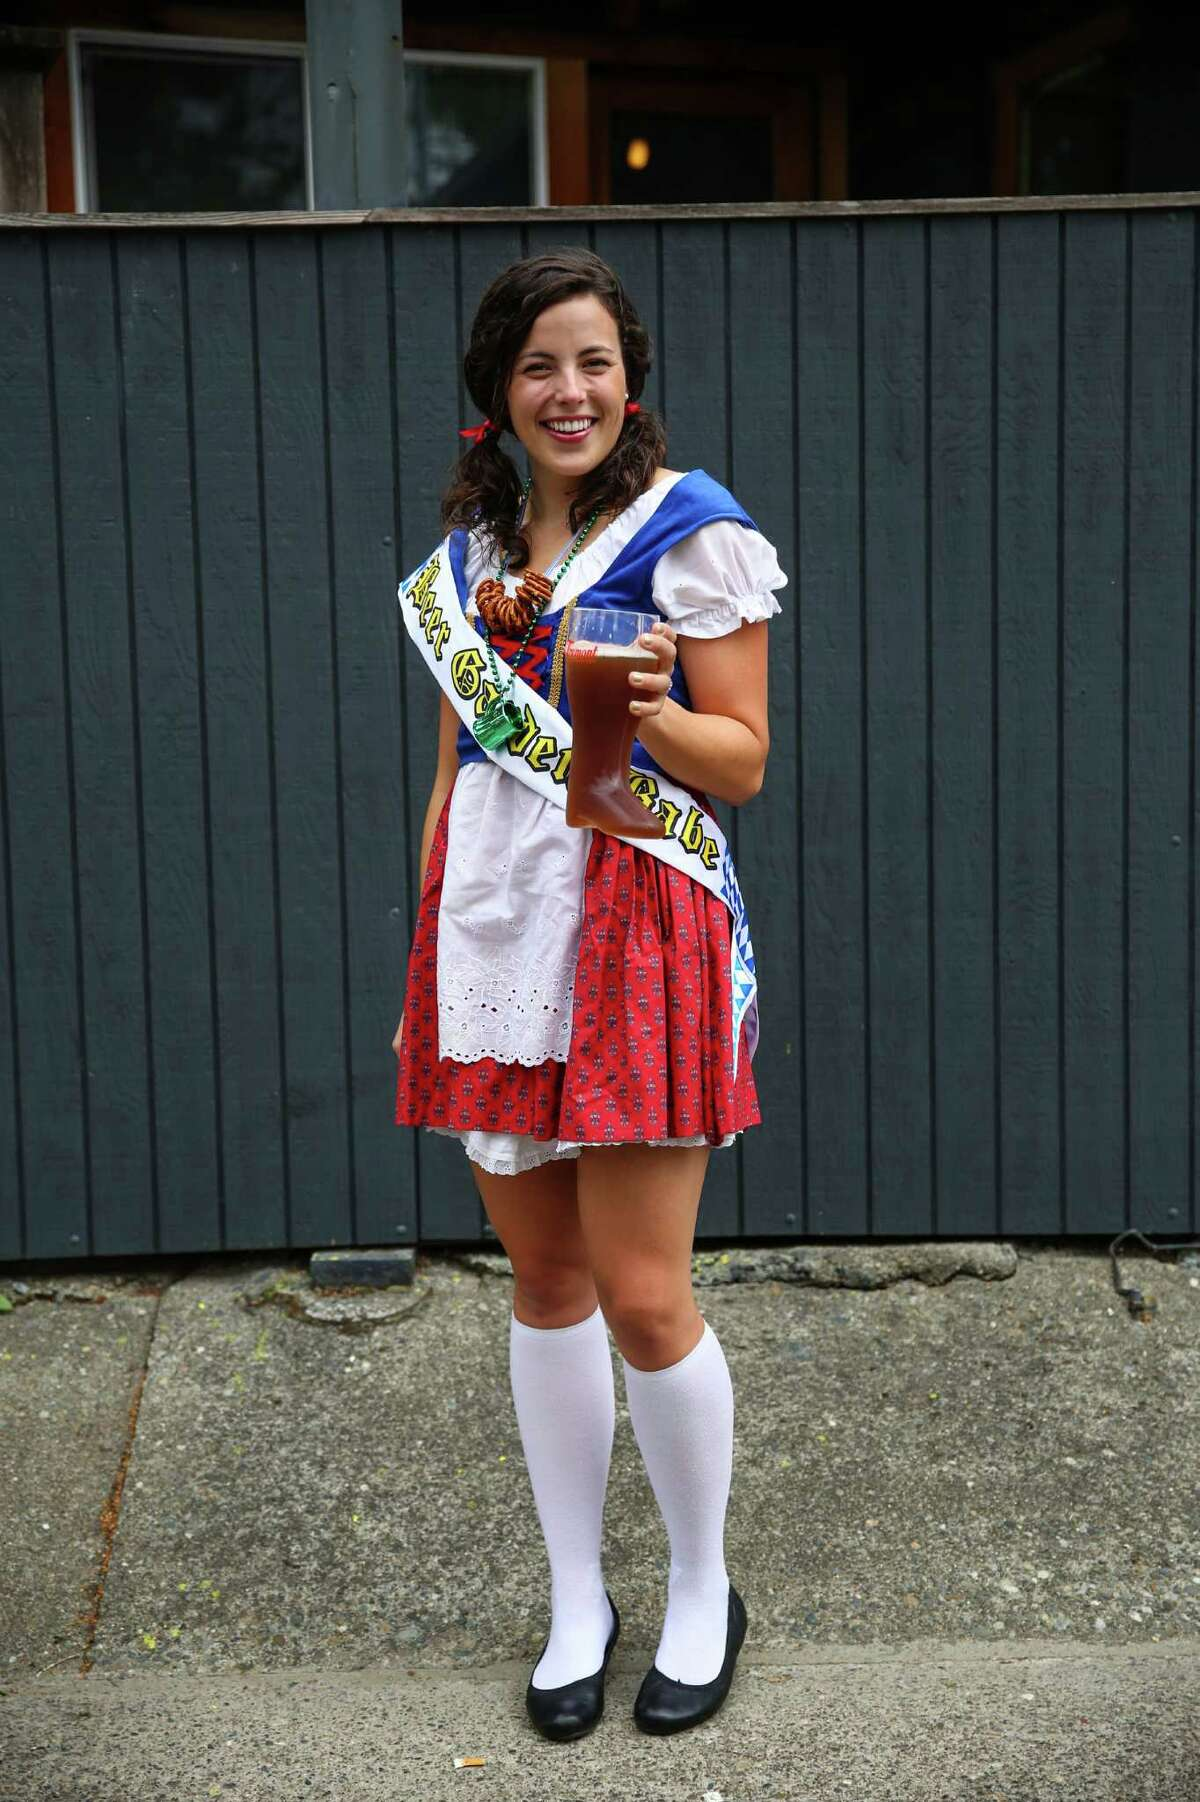 Claire Rachor shows her Oktoberfest spirit during Fremont Oktoberfest on Saturday, September 19, 2015. Rachor was celebrating her bachelorette party at the festival. The annual three day event climates in a Sunday Oktoberfest 5k and chainsaw pumpkin carving contest.